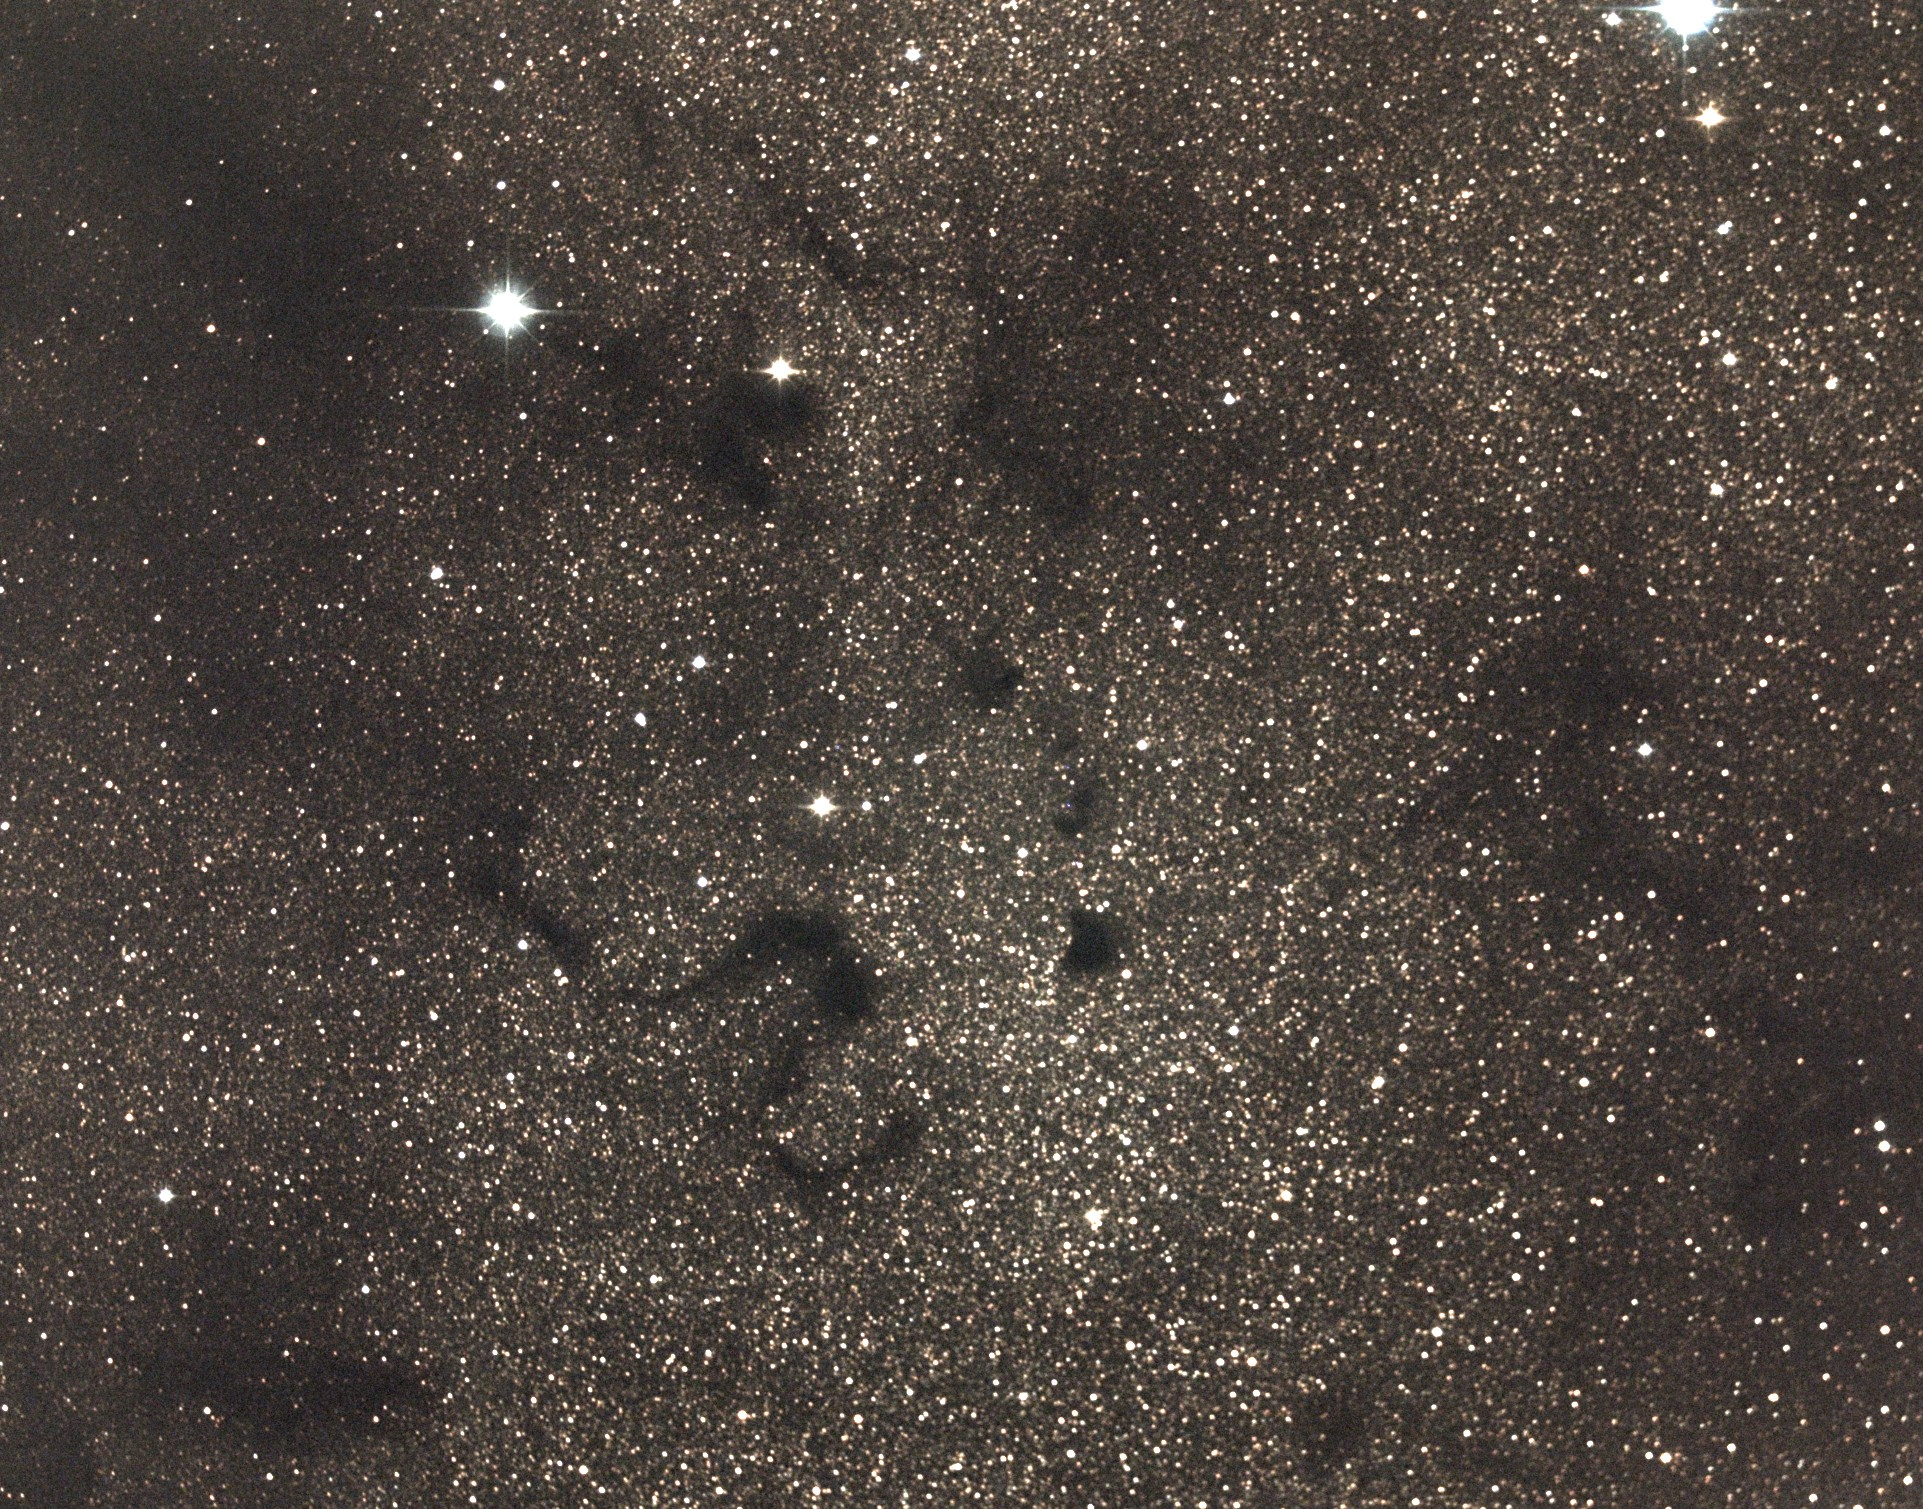 Barnard 72, The Snake Nebula. Photo credit: Richard Johnson.